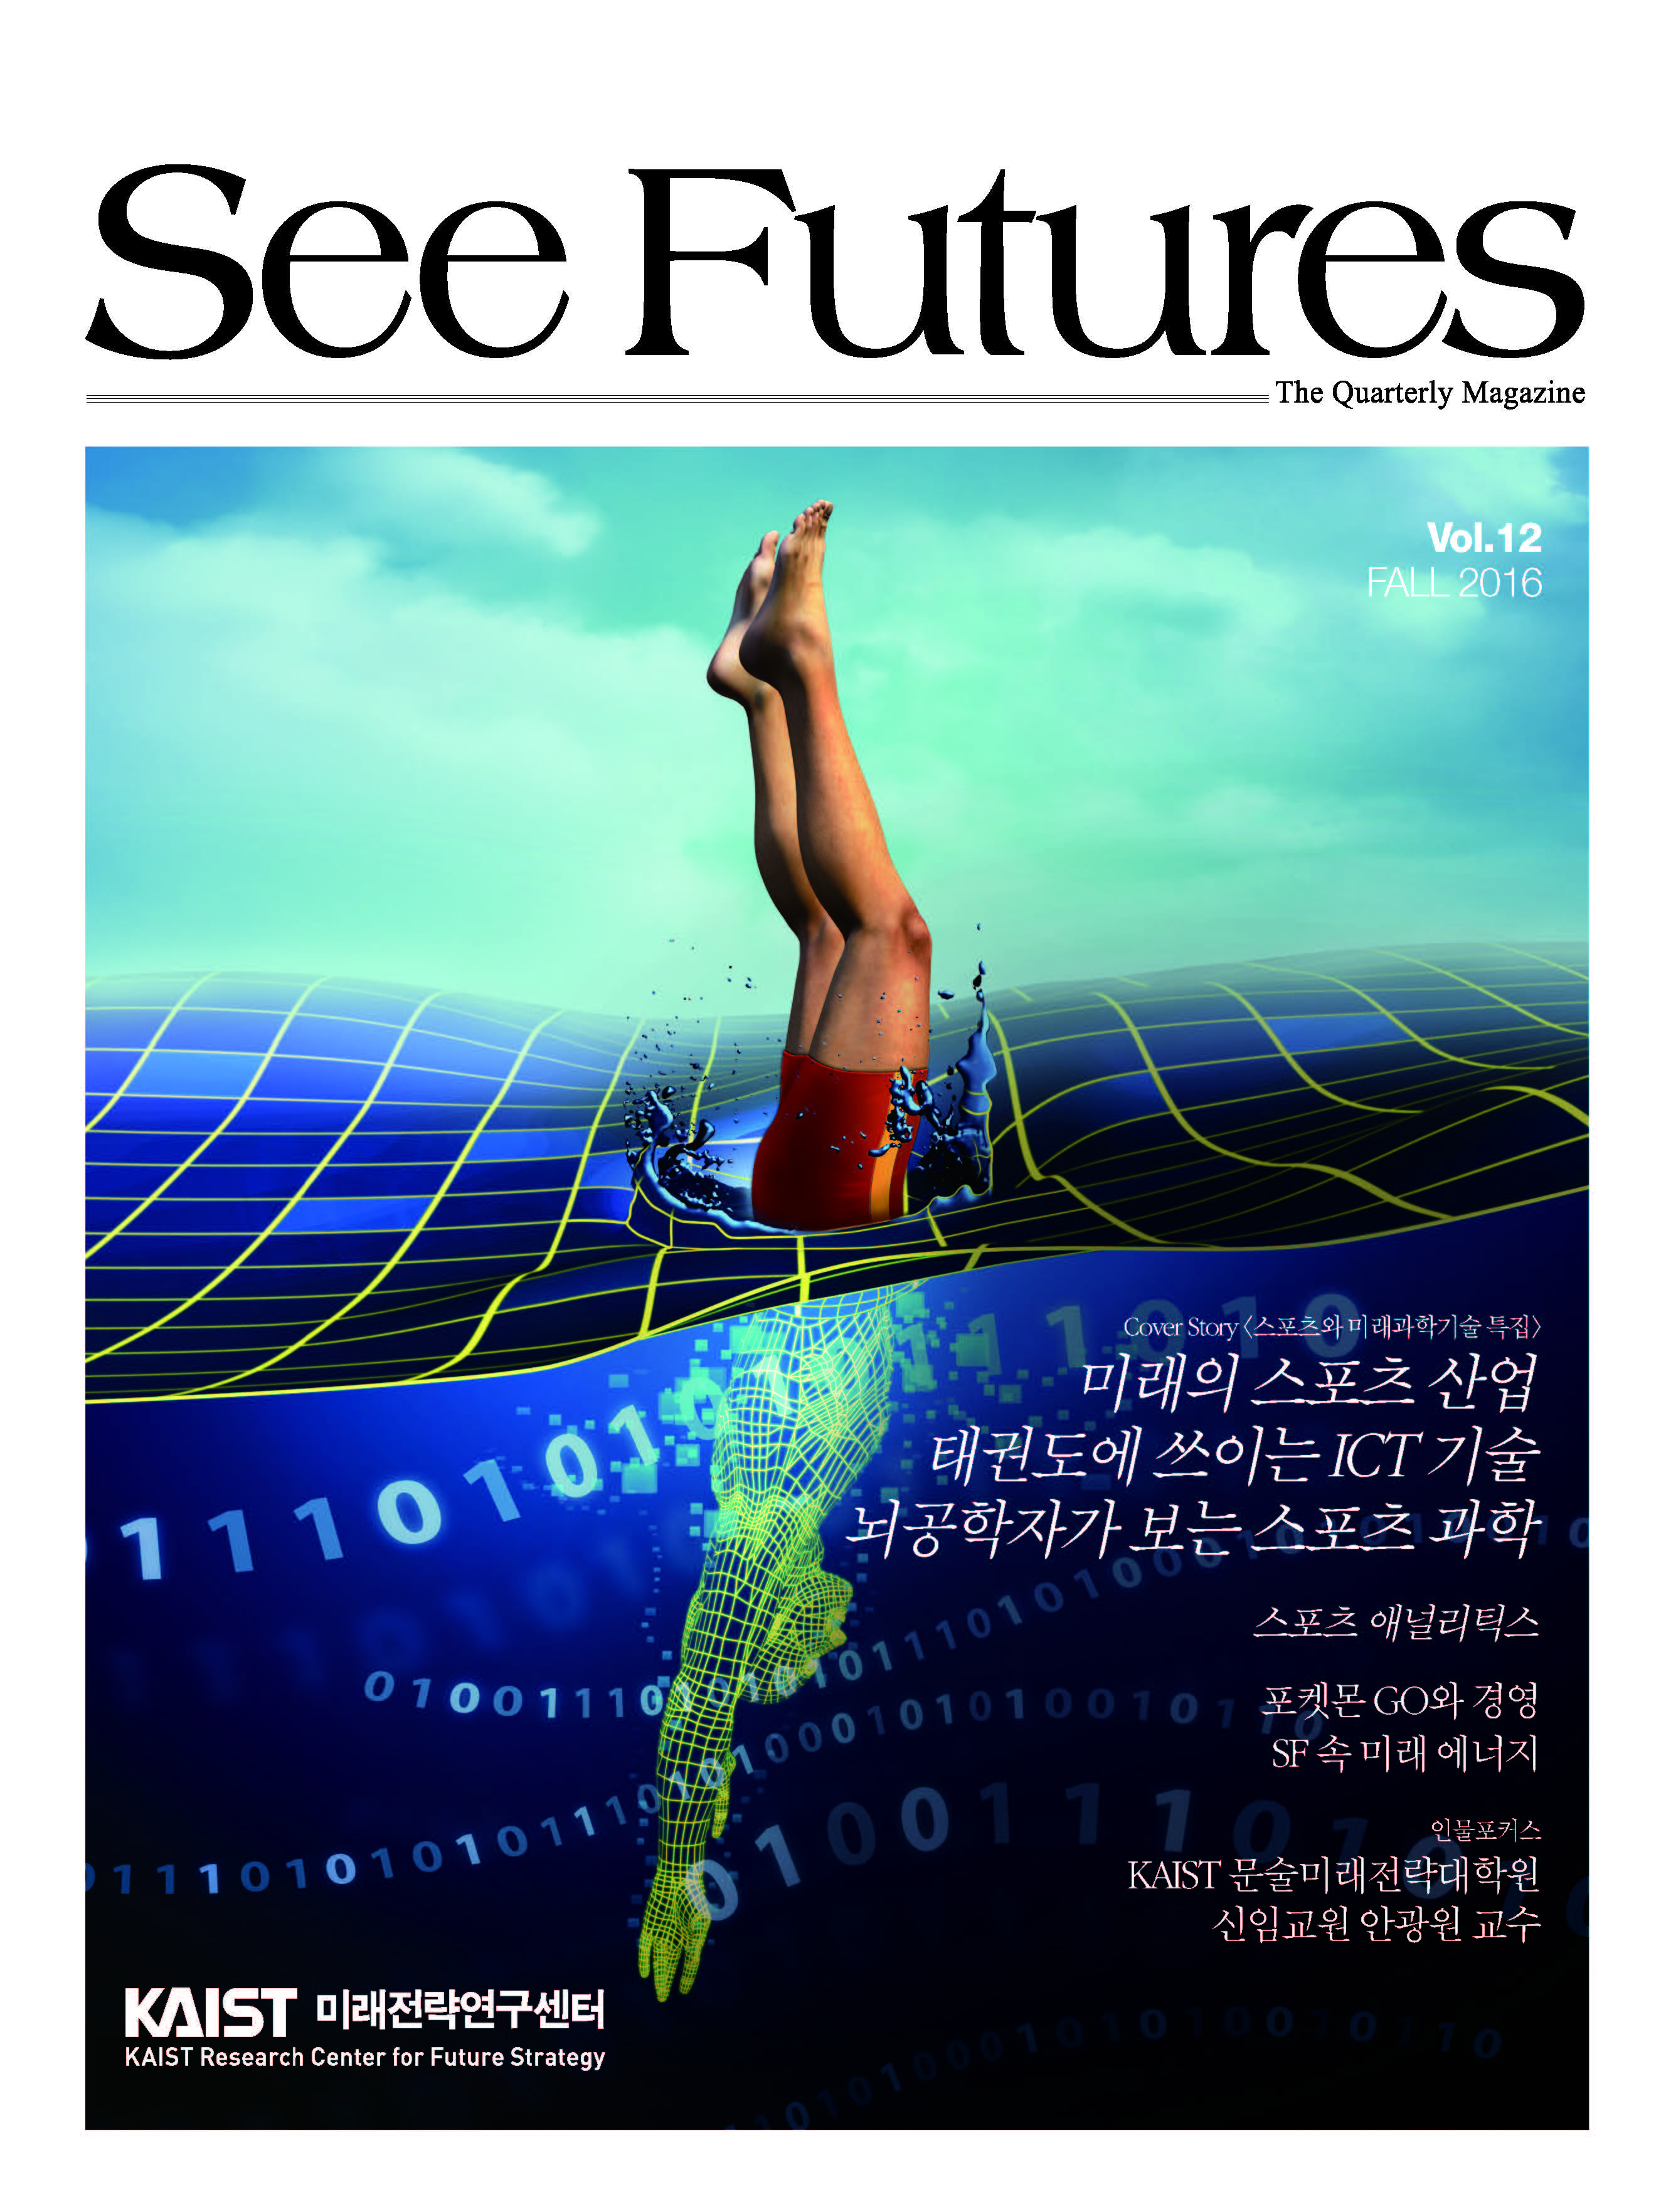 See Futures FALL 2016 (제 12호)